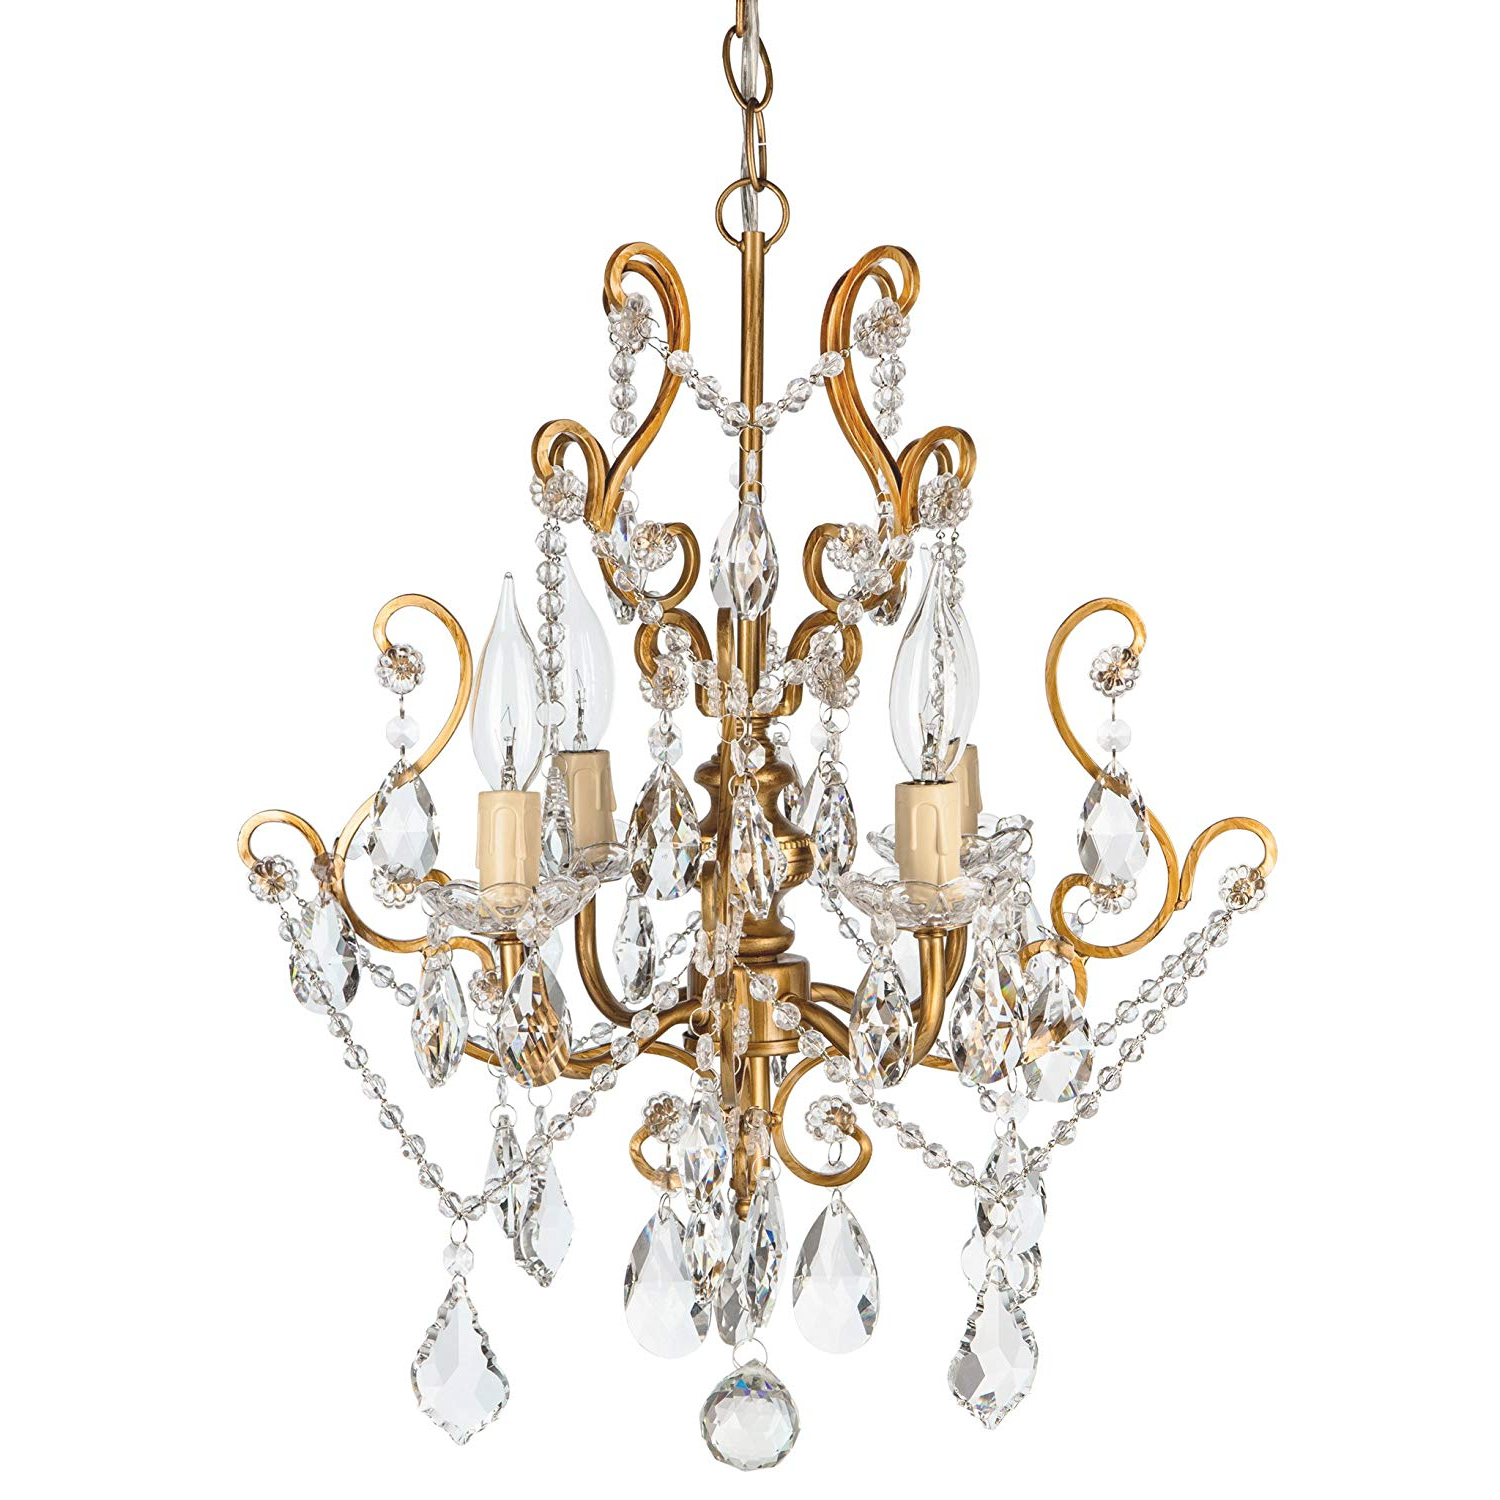 Emaria 4 Light Unique / Statement Chandeliers Within Well Liked Amalfi Decor 4 Light Led Crystal Beaded Chandelier, Mini Wrought Iron K9  Glass Pendant Light Fixture Vintage Nursery Kids Room Dimmable Plug In (View 20 of 25)